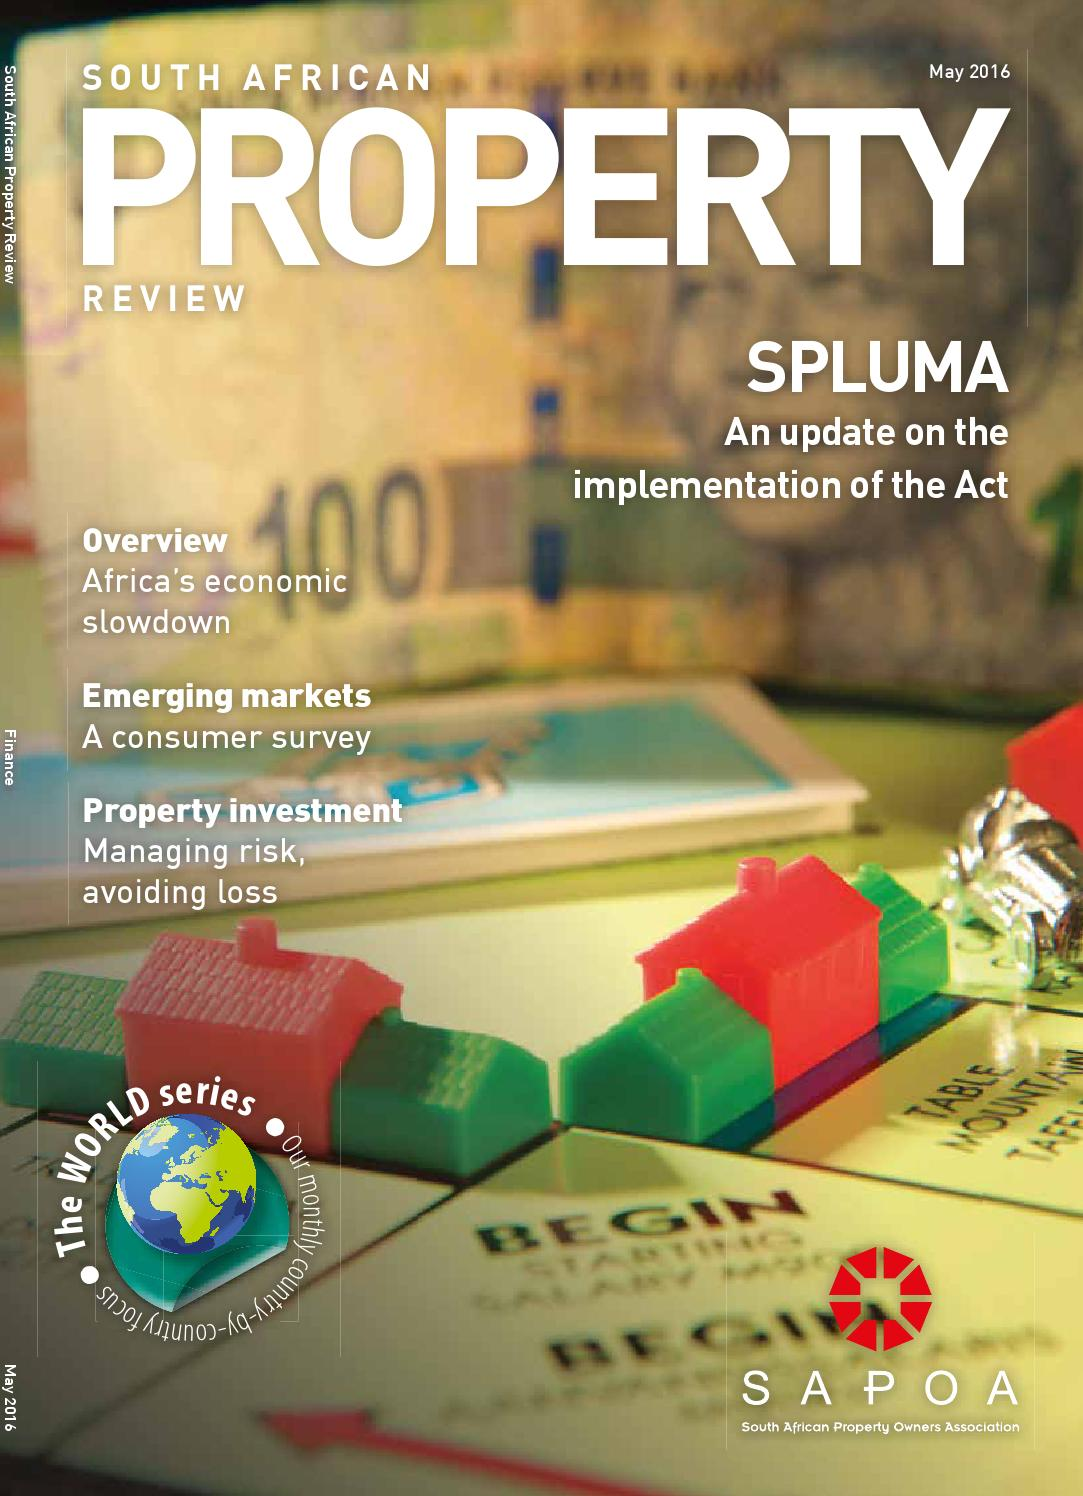 South African Property Review May 2016 By Sapoa Issuu Electrical Wiring Certificate Africa